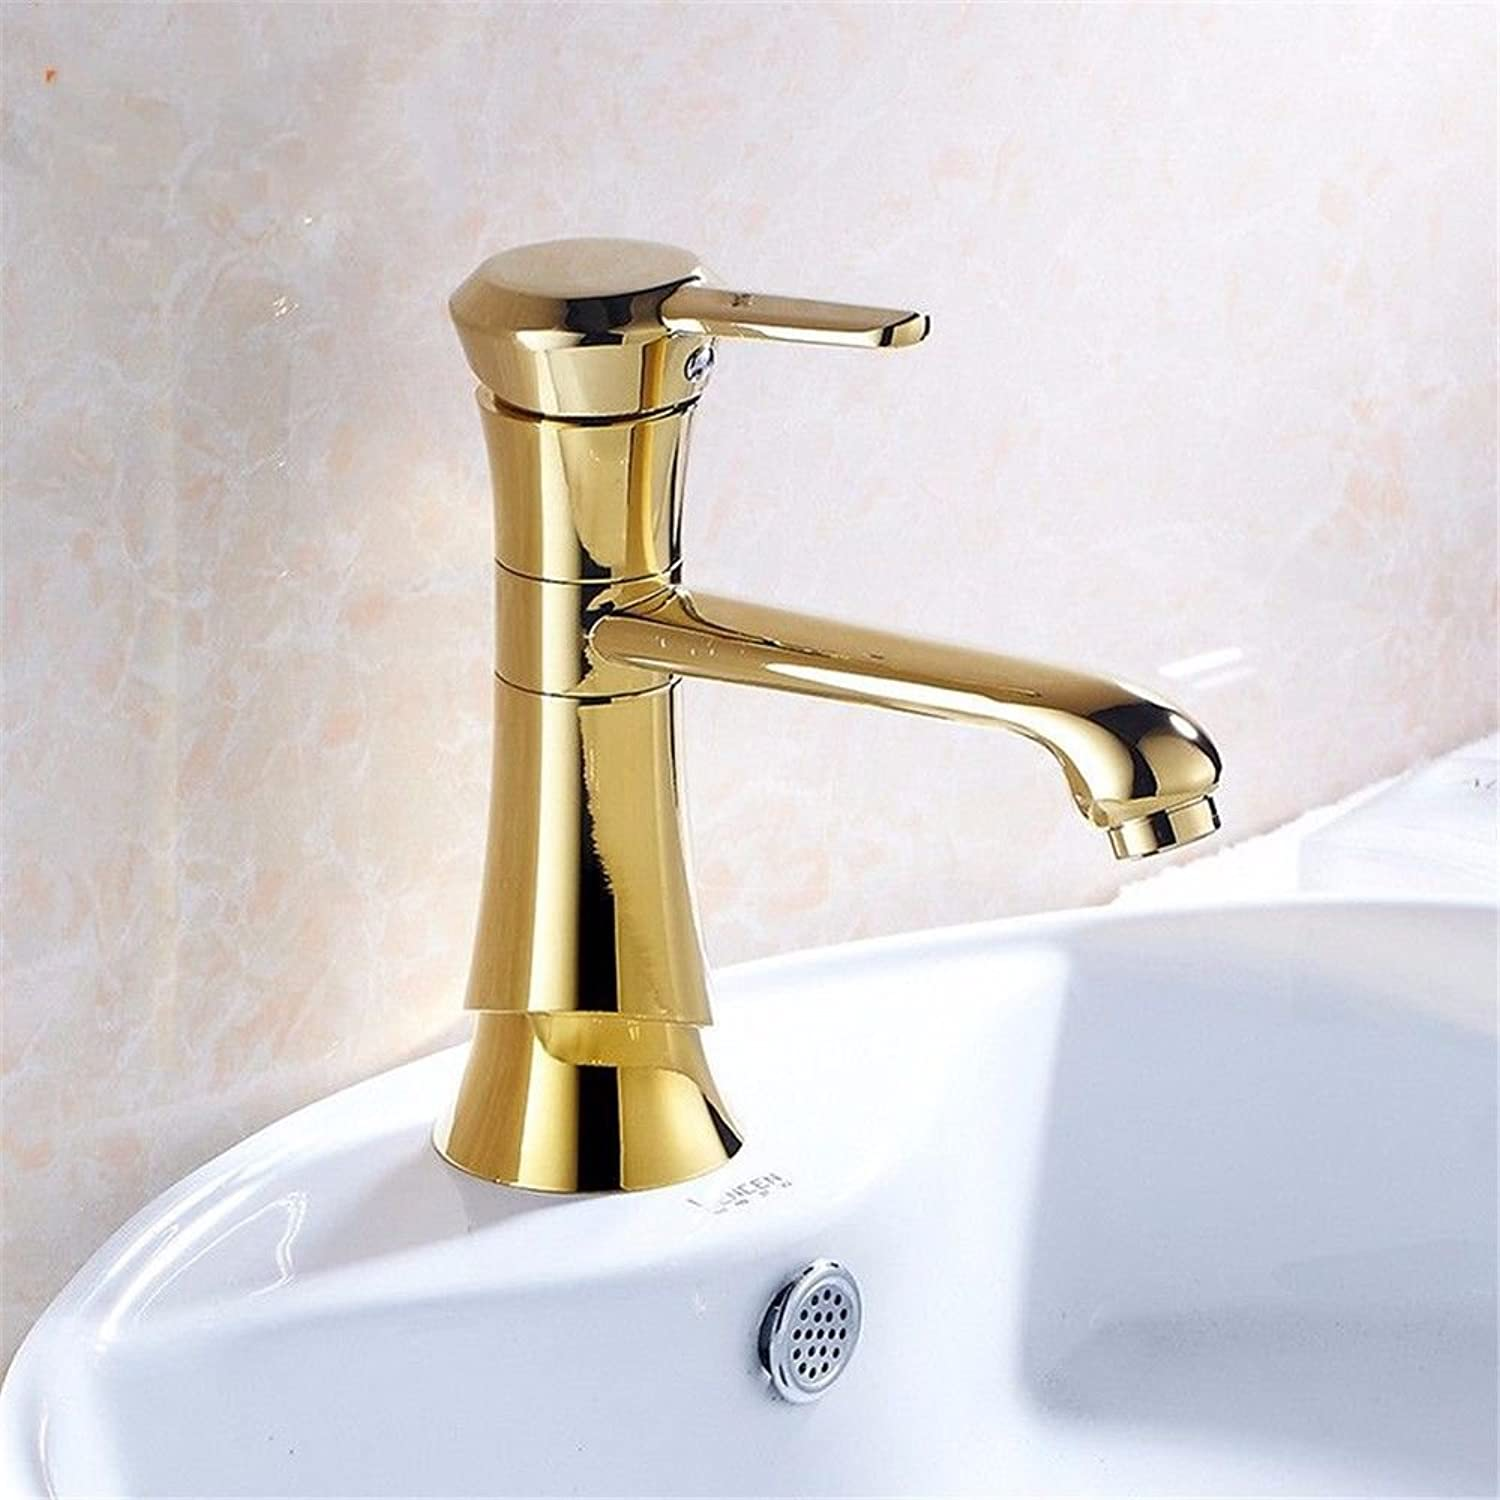 Lpophy Bathroom Sink Mixer Taps Faucet Bath Waterfall Cold and Hot Water Tap for Washroom Bathroom and Kitchen golden Hot and Cold Square Single Handle Single Hole